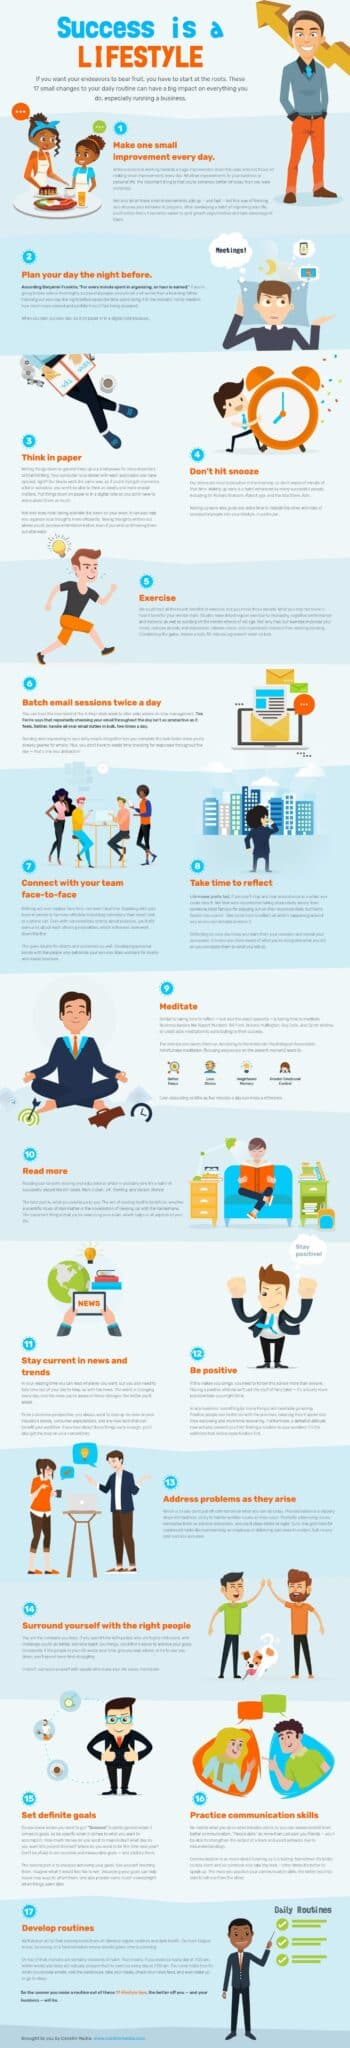 17 Insightful Tips to Improve your Routine